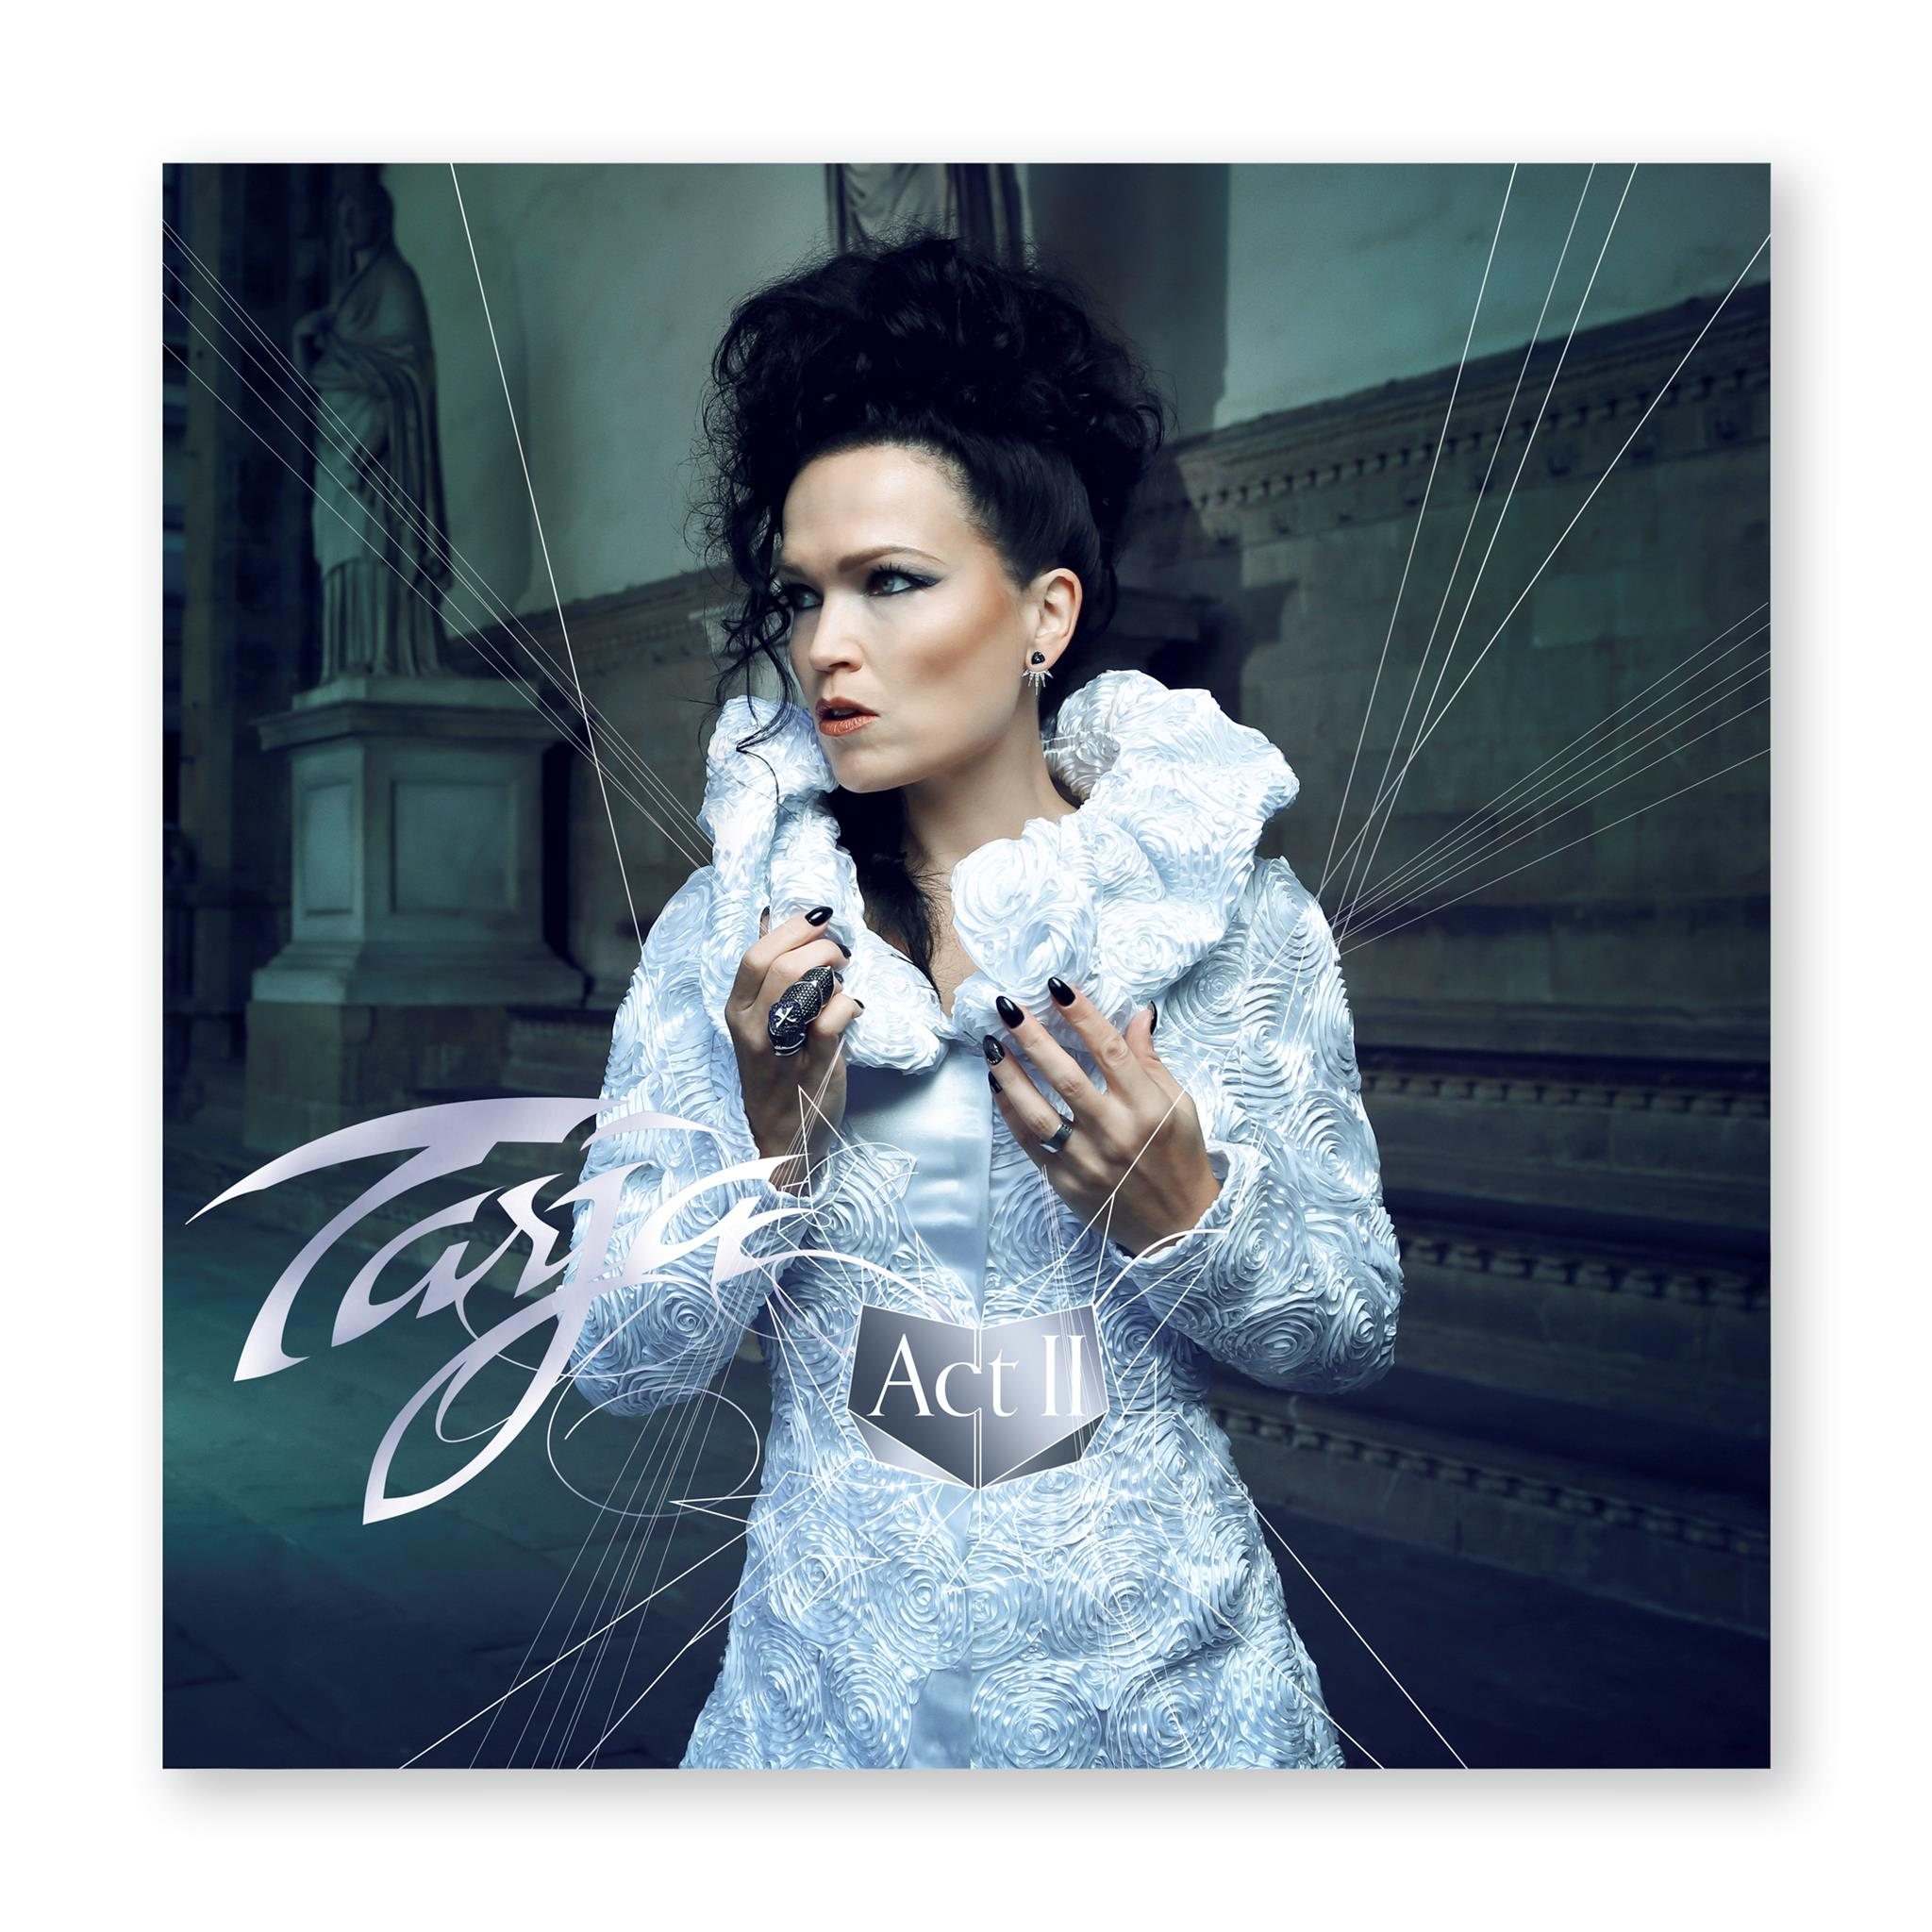 Tarja: Act II (2018) Book Cover